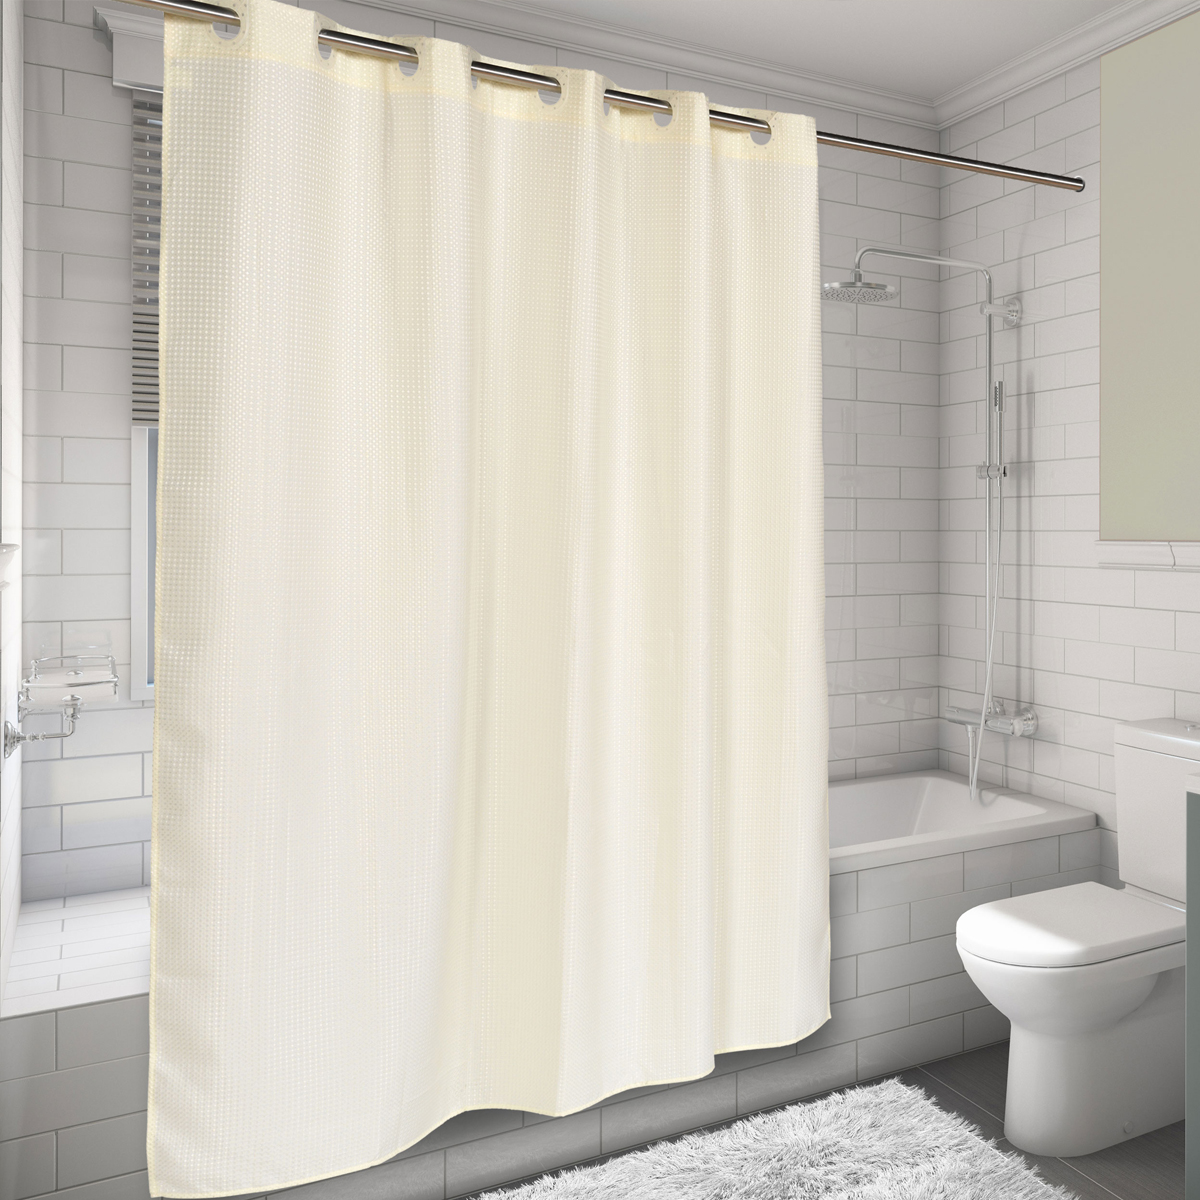 Details About Ez On Hookless Fabric Shower Curtain Waffle Weave 70 X75 Ivory